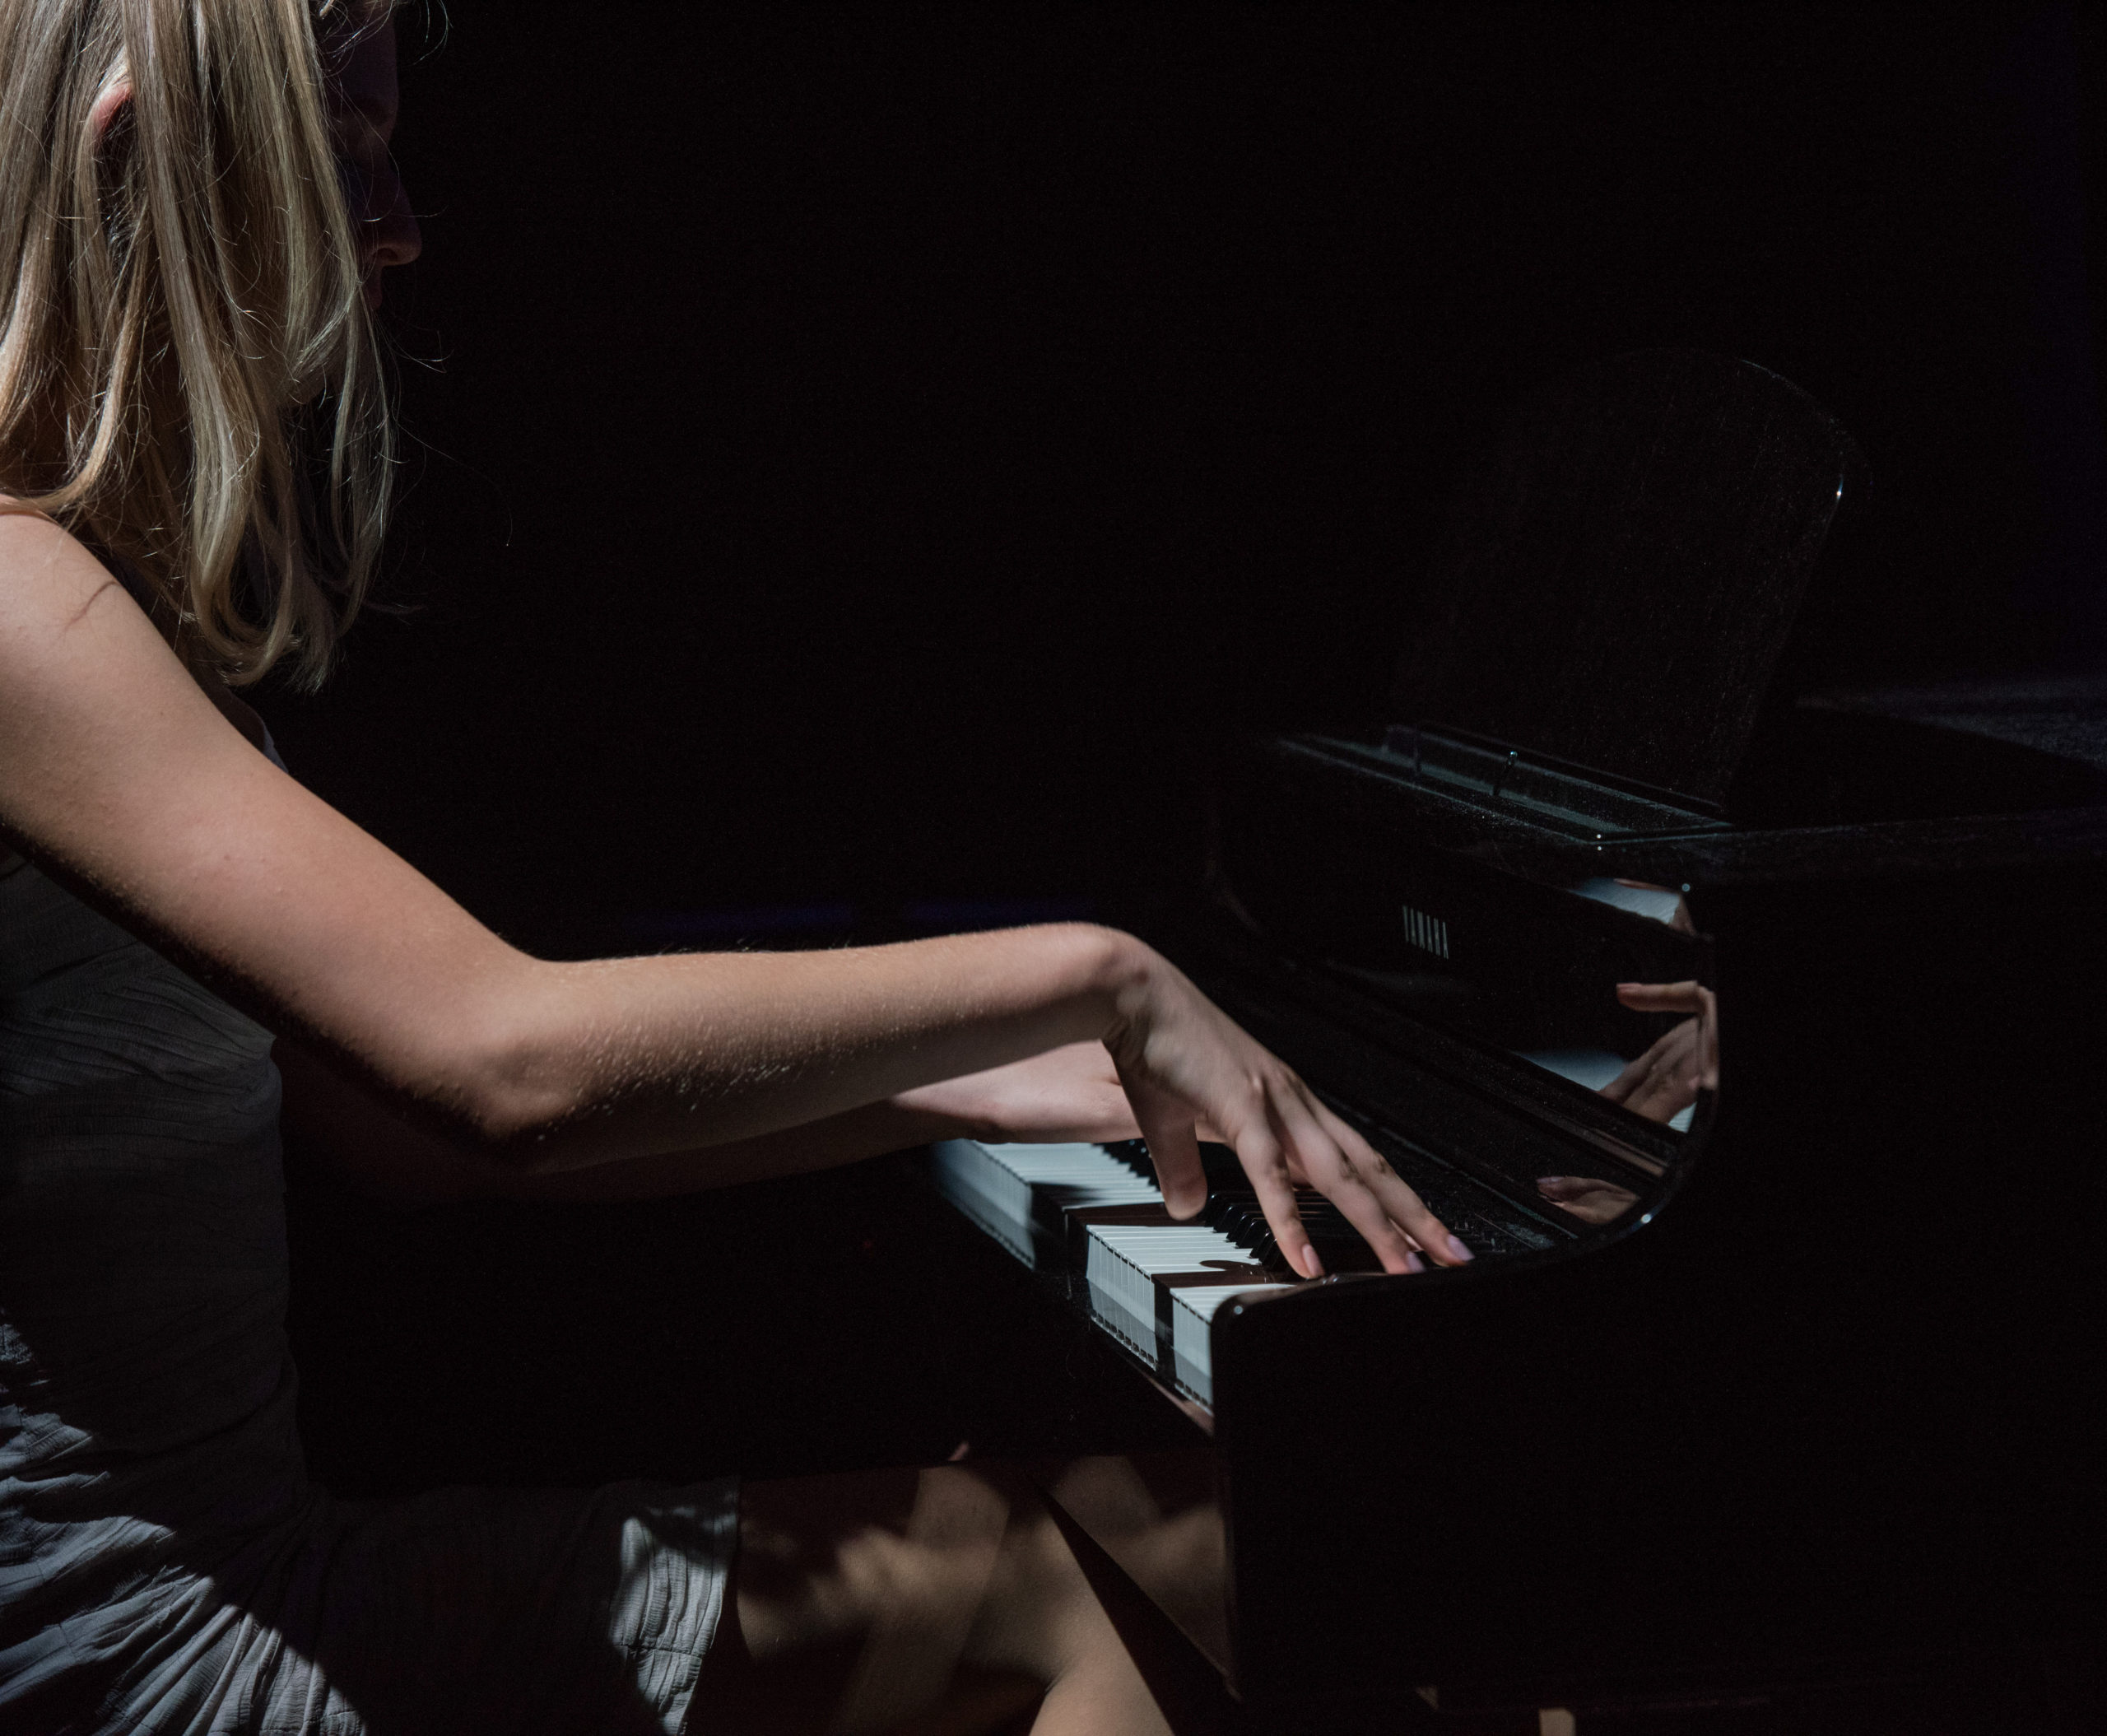 Piano photography 1